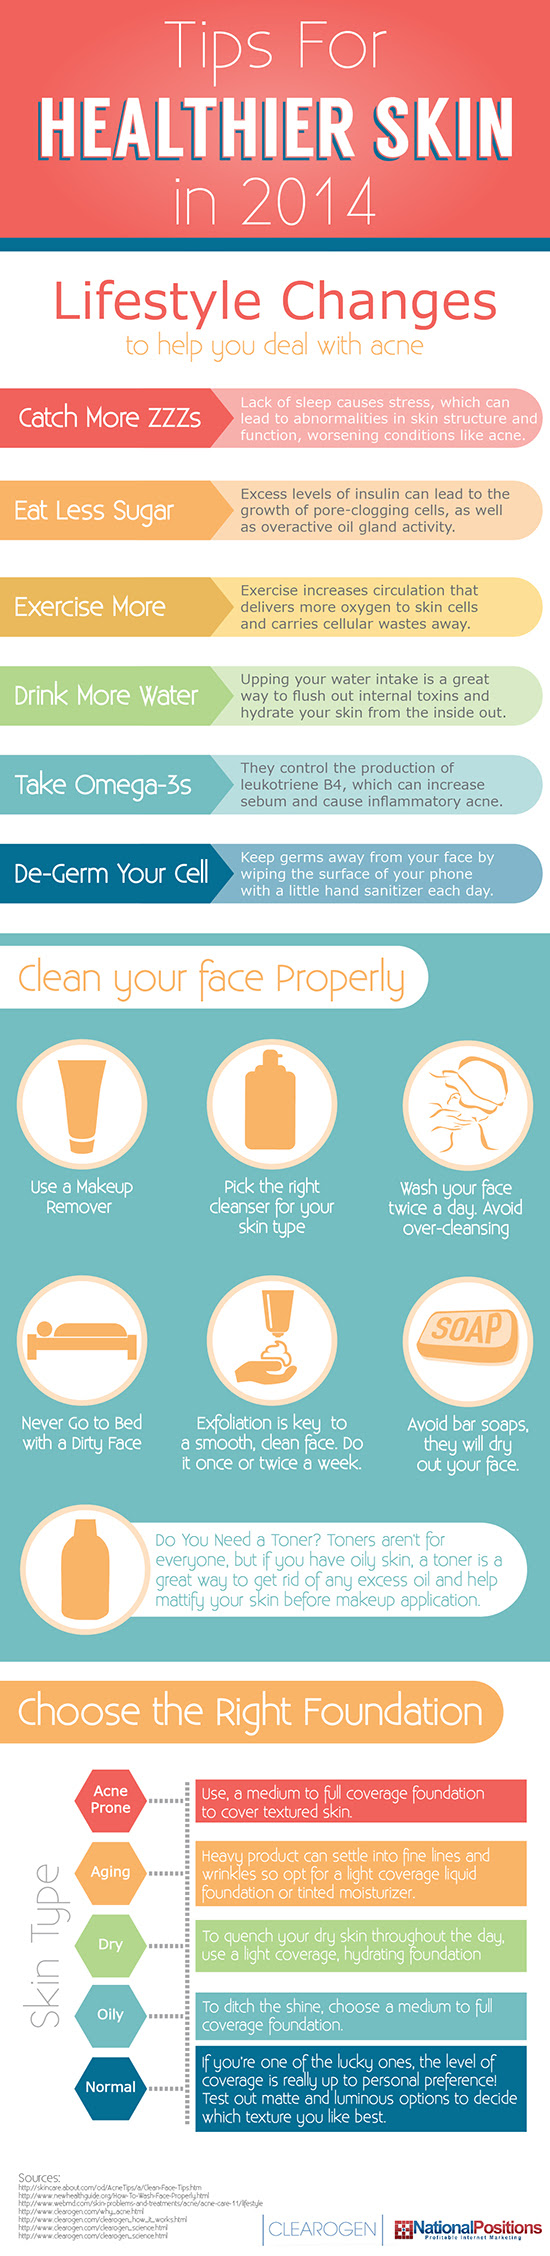 Infographic: Tips For Healthier Skin In 2014